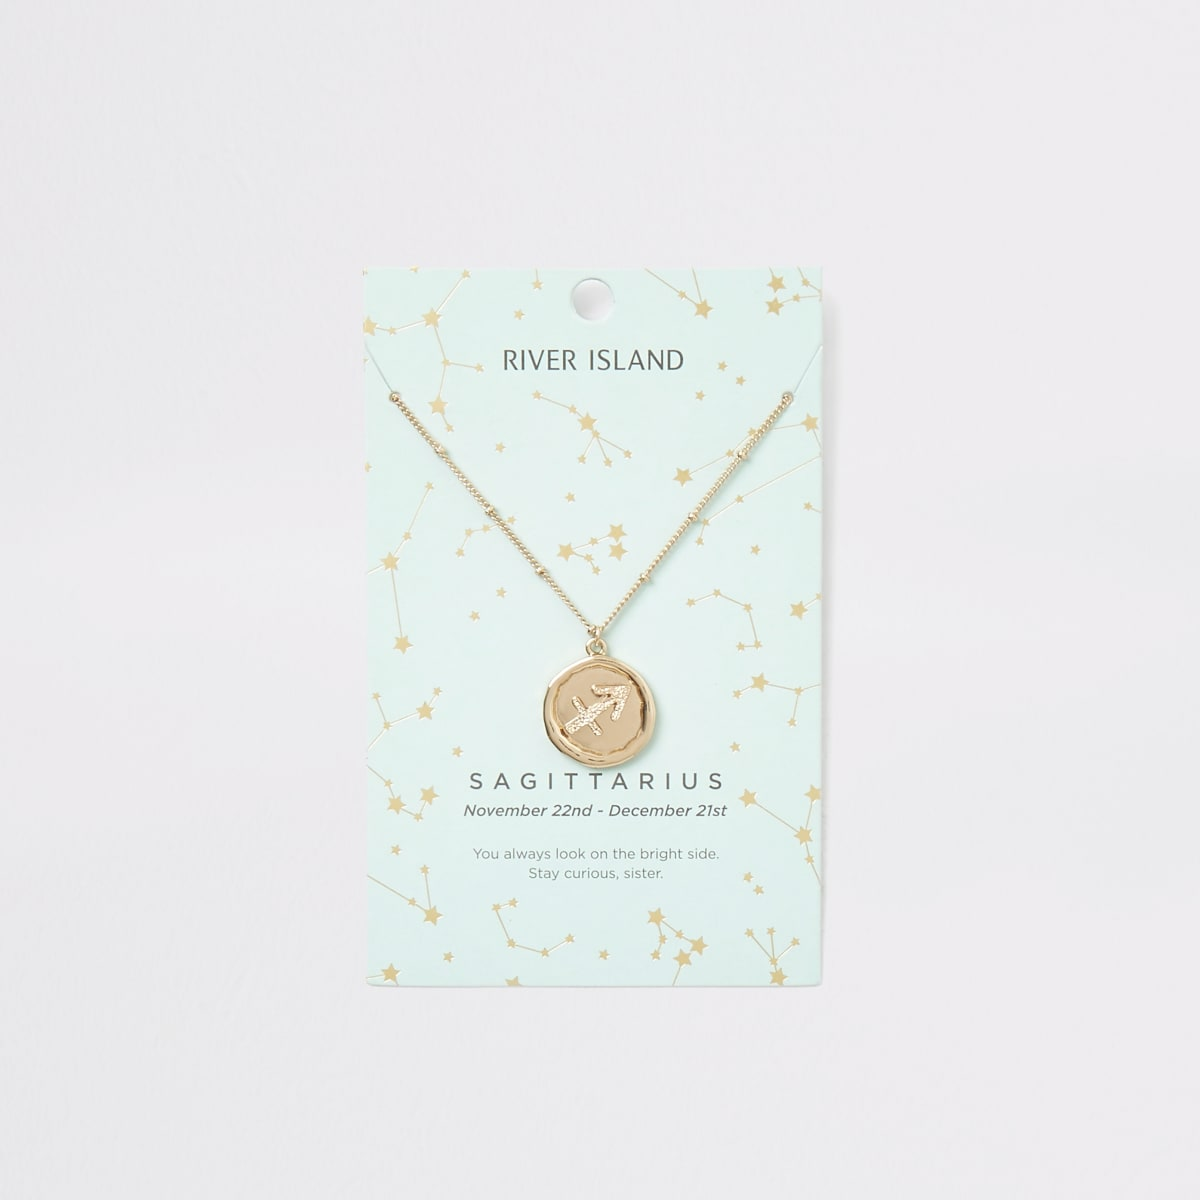 Sagittarius zodiac sign gold colour necklace